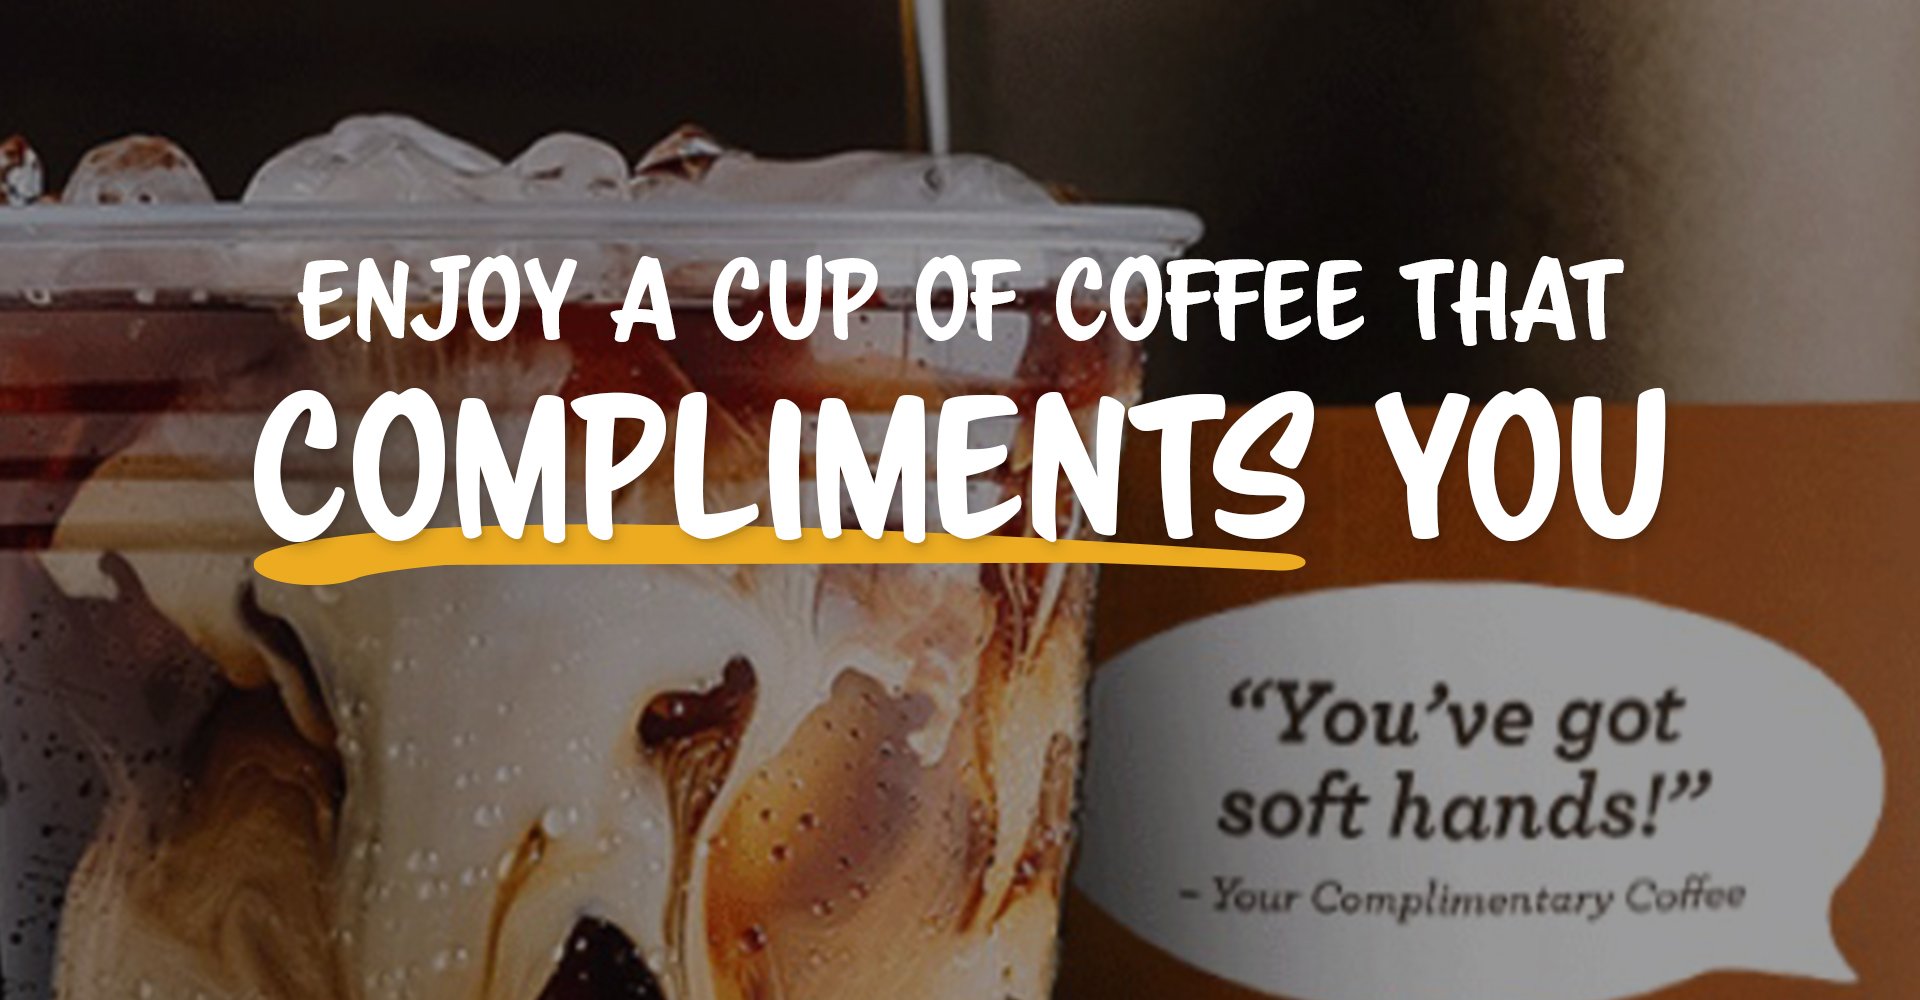 Get a Boost from Complimentary Coffee